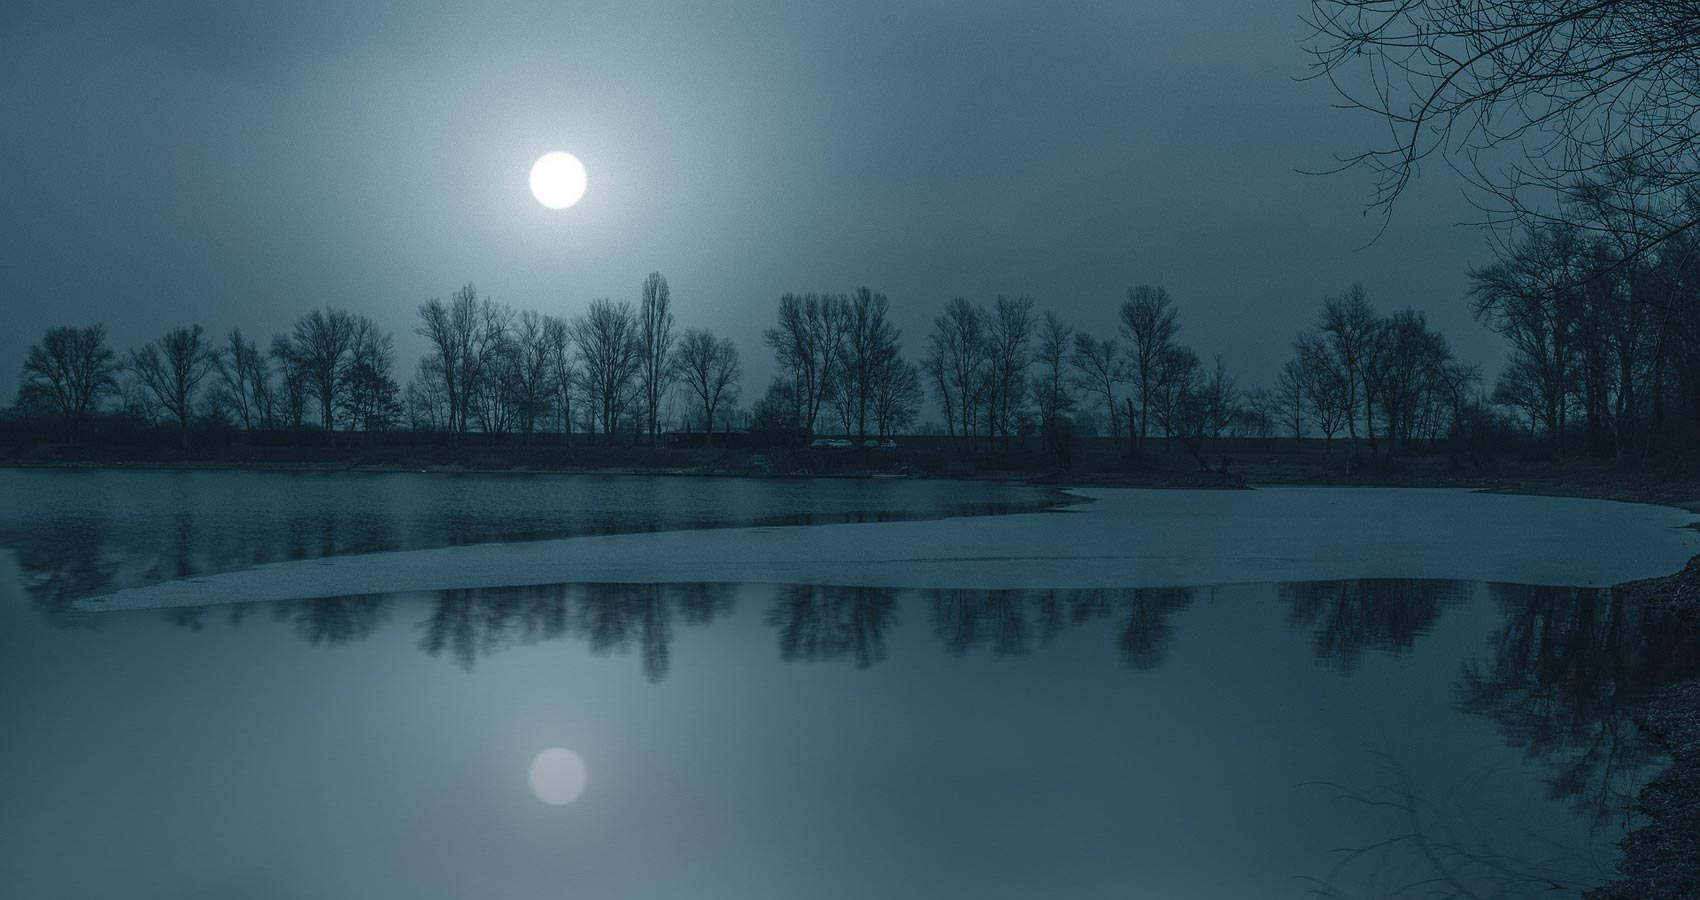 Moon River, micropoetry by Robbie Pruitt at Spillwords.com